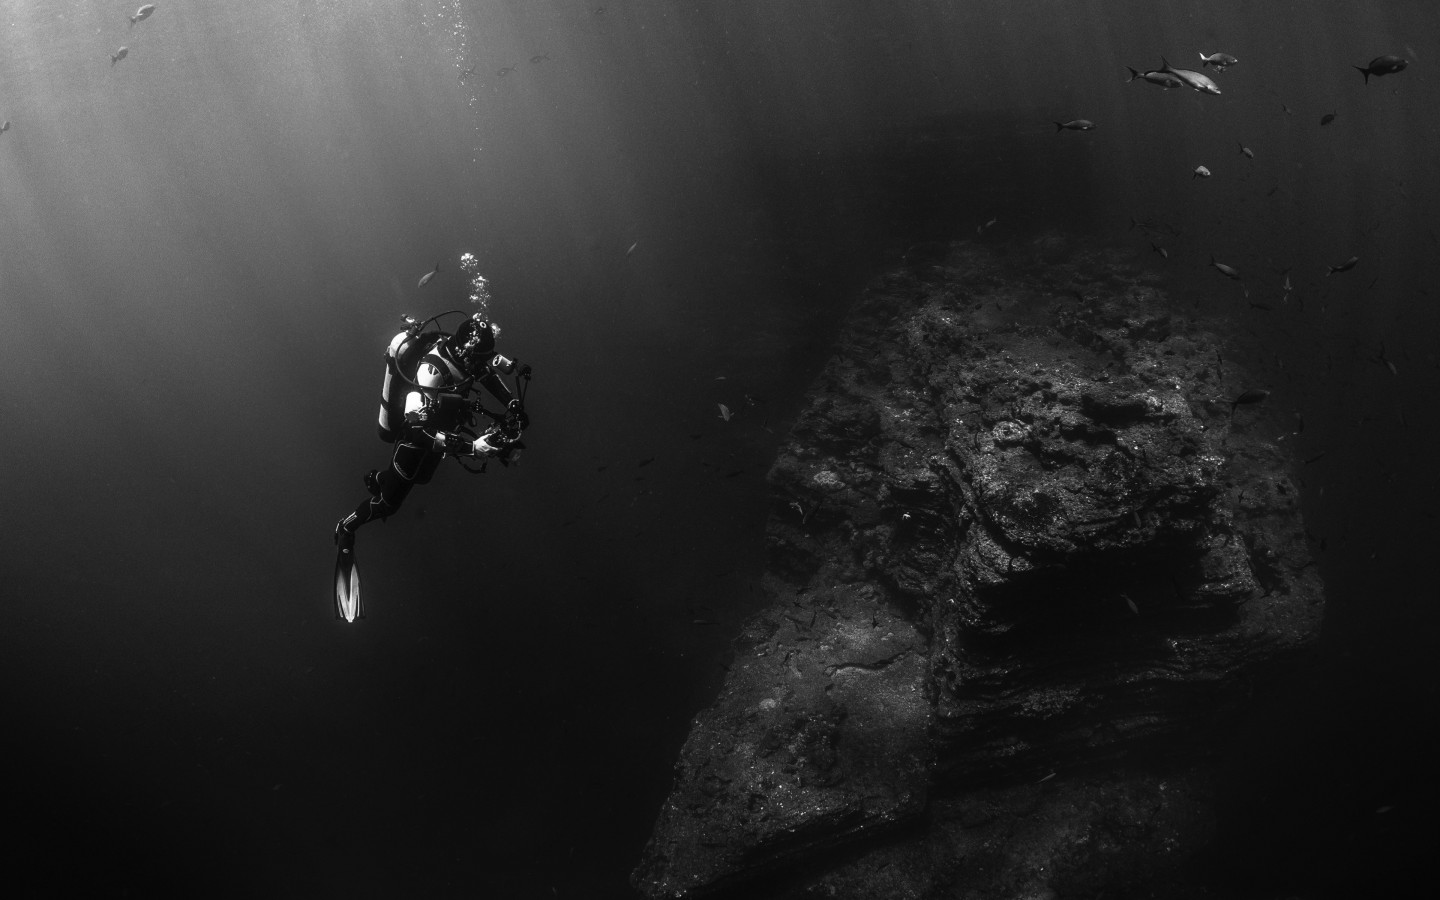 Diver in the Pacific Ocean wallpaper 1440x900